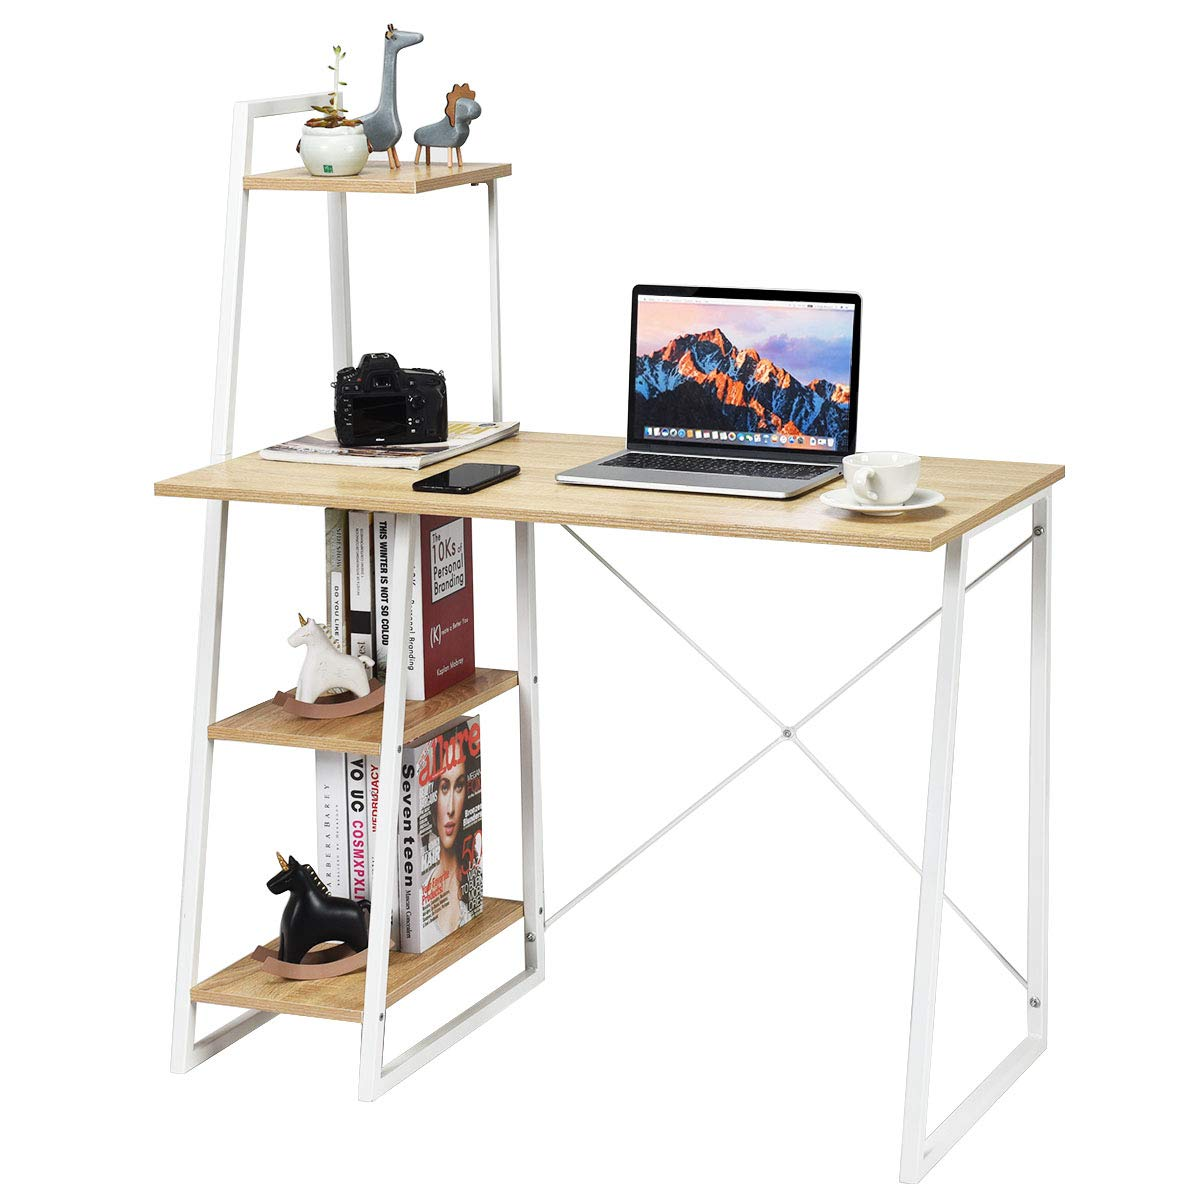 Tangkula Computer Desk with 4 Tier Shelves, Writing Desk Study Desk, Compact Computer Desk Workstation with X-Shaped Metal Frame & Particle Board, Home Office Desk (Natural) by Tangkula